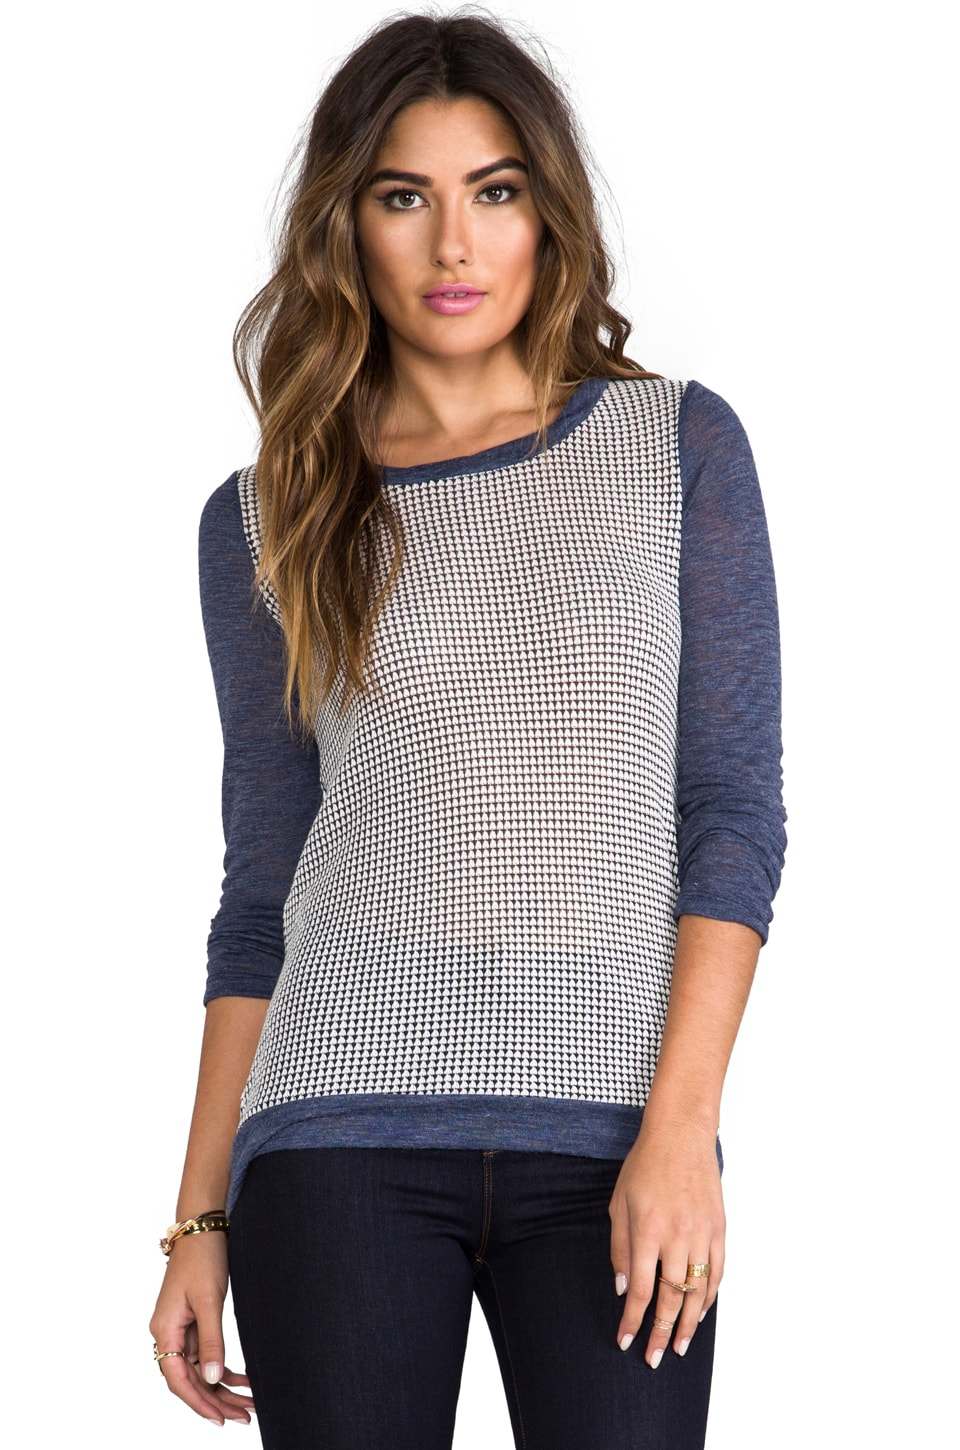 Splendid Azulon Jersey Knit in Heather Navy